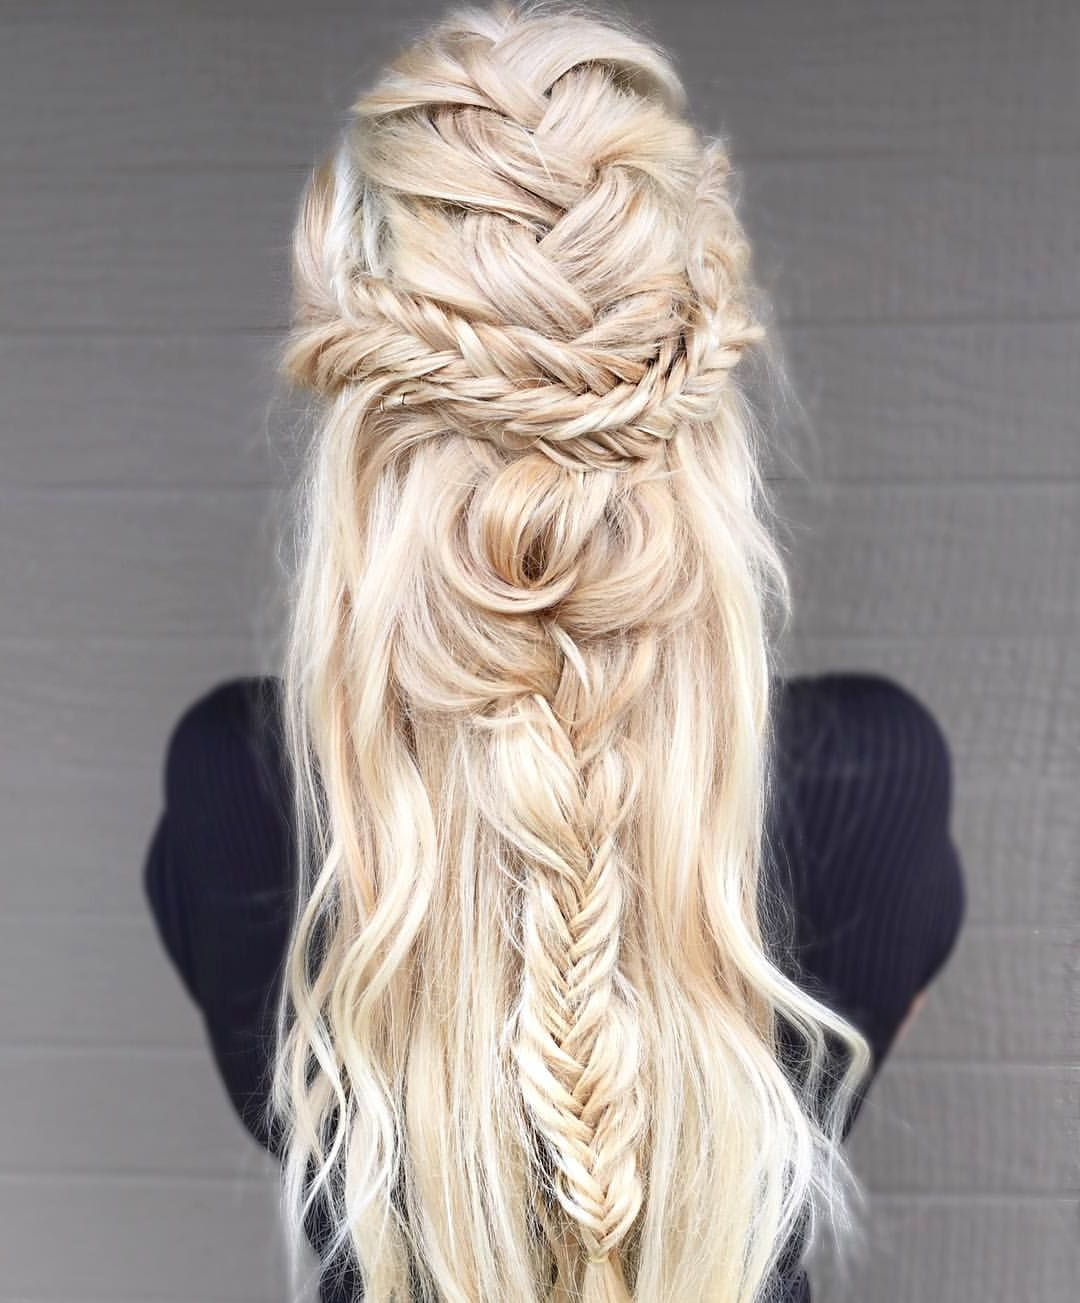 60 Cute Boho Hairstyles For Short, Long, Medium Length Hair Pertaining To Most Recent Braid Spikelet Prom Hairstyles (Gallery 20 of 20)